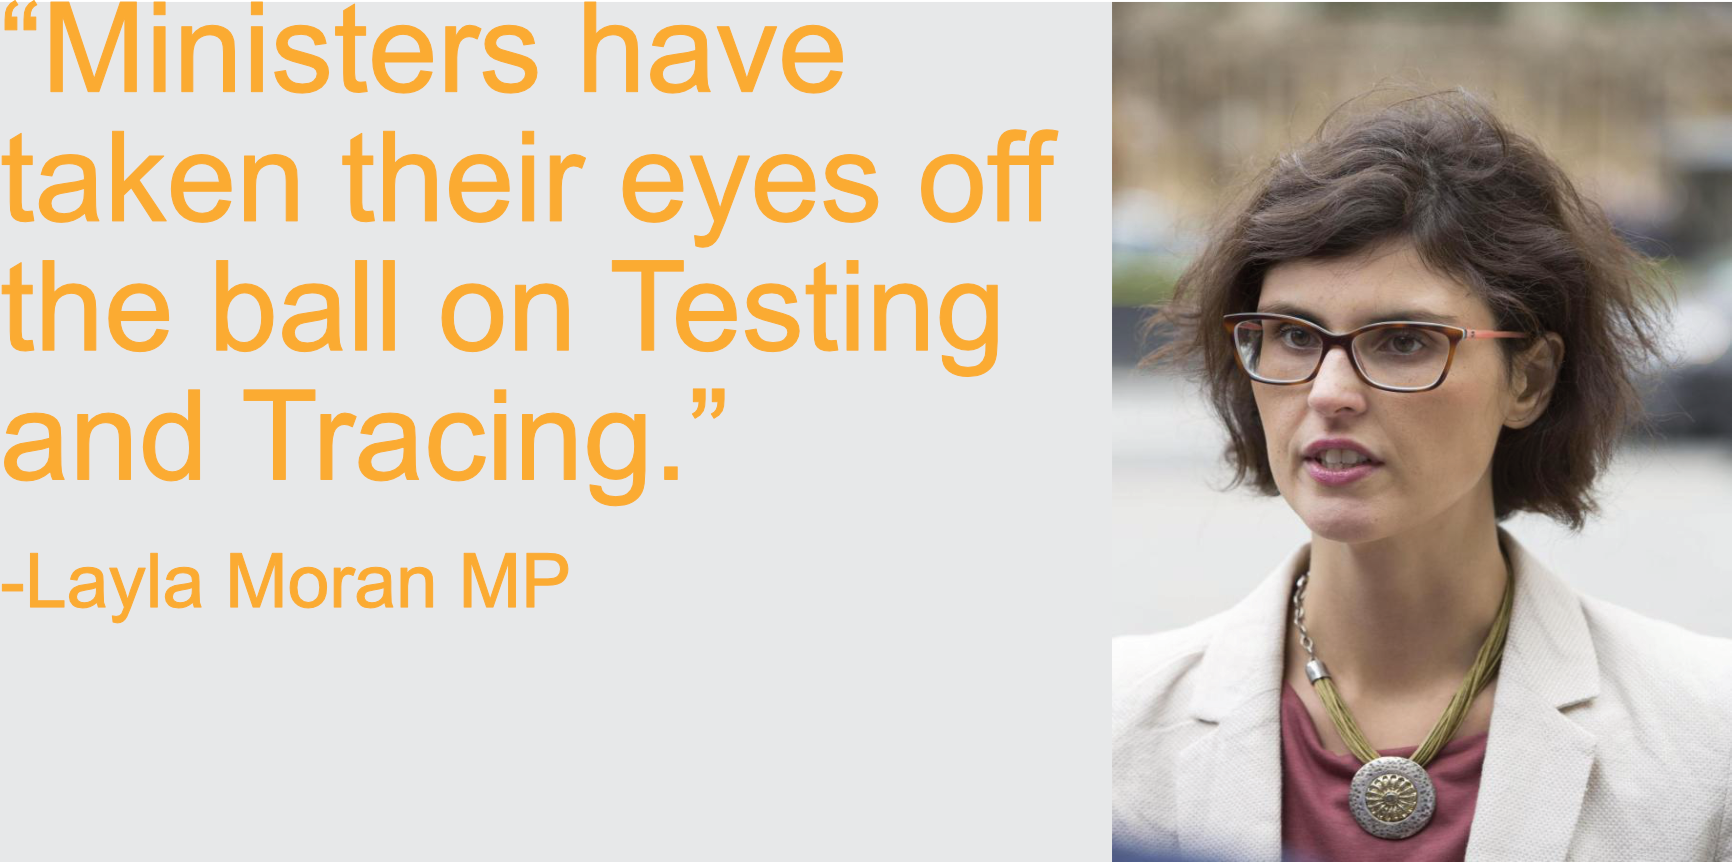 Testing and tracing : Ministers have taken their eyes off the ball